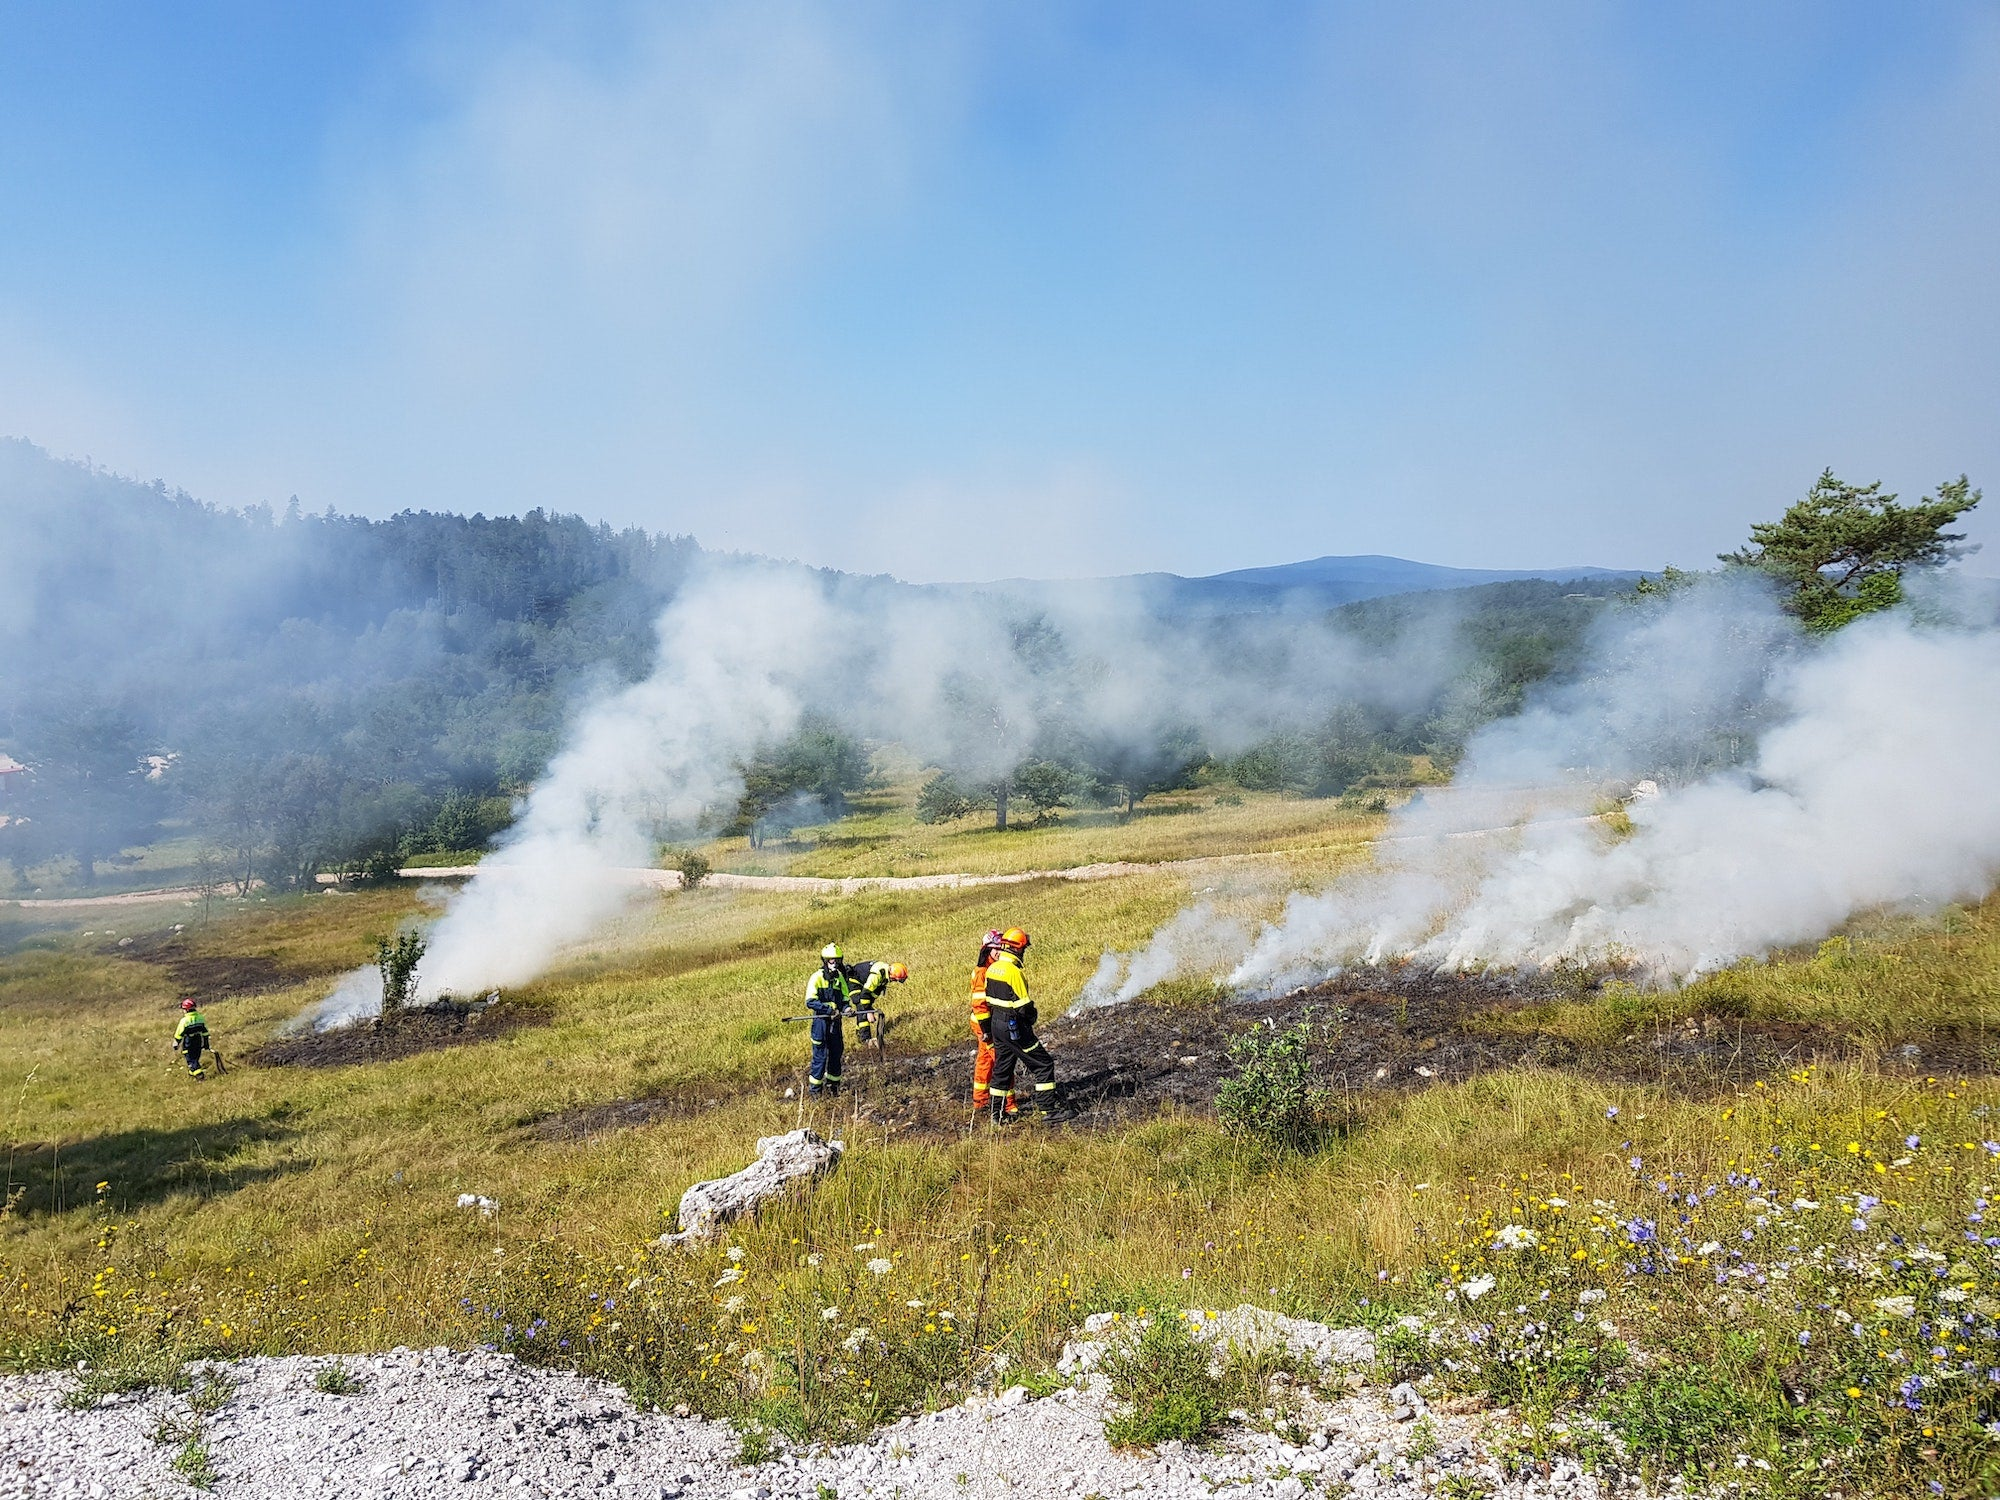 firefighters standing in a field full of small plumes of smoke